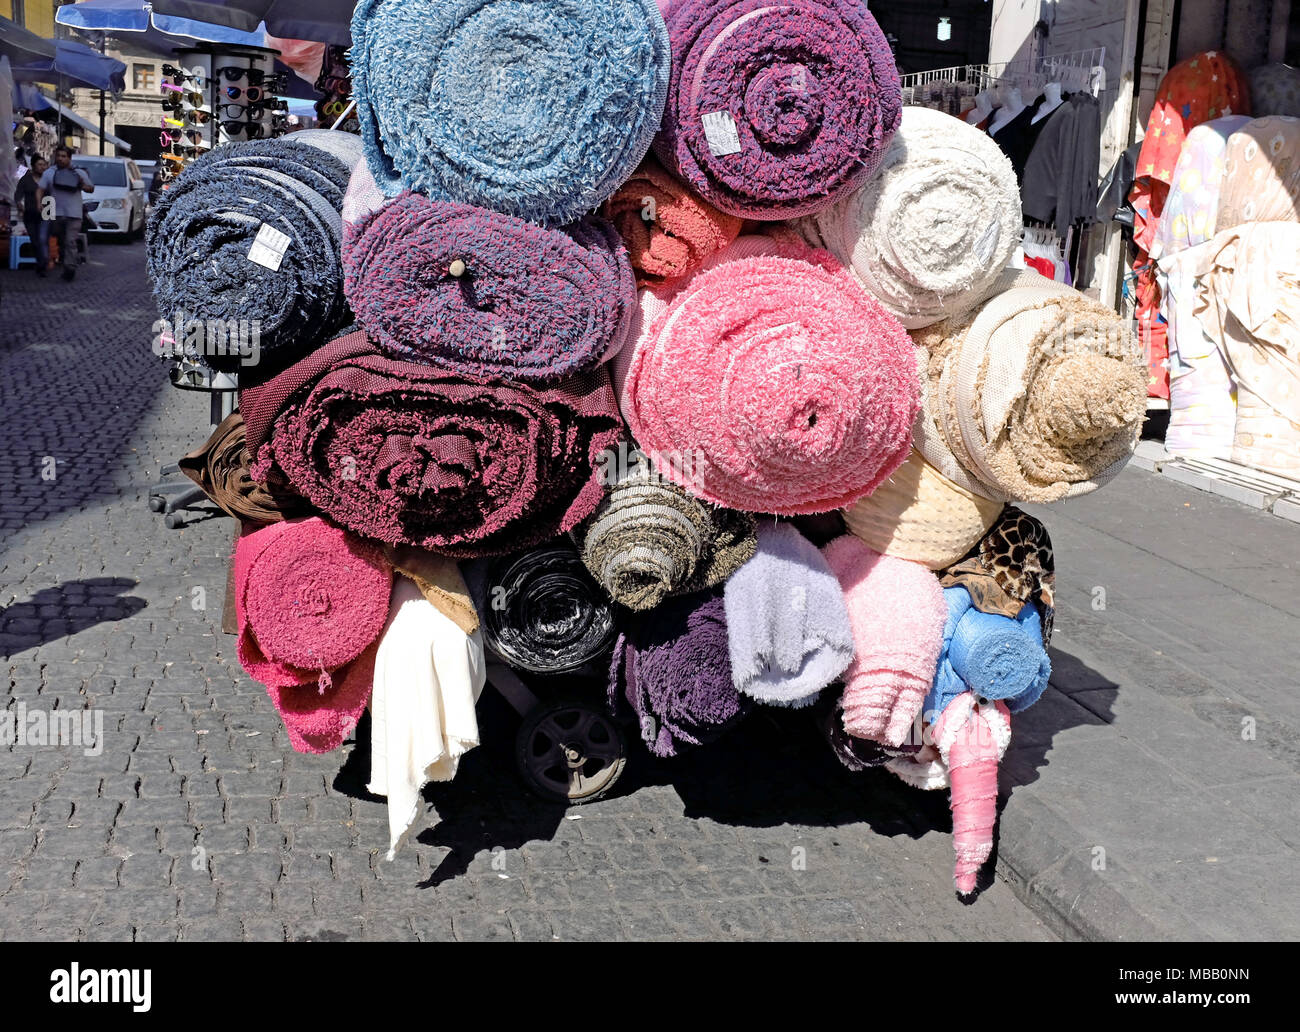 Rolls of carpeting are transported through the marketplace in the historic center of Mexico City, Mexico. - Stock Image